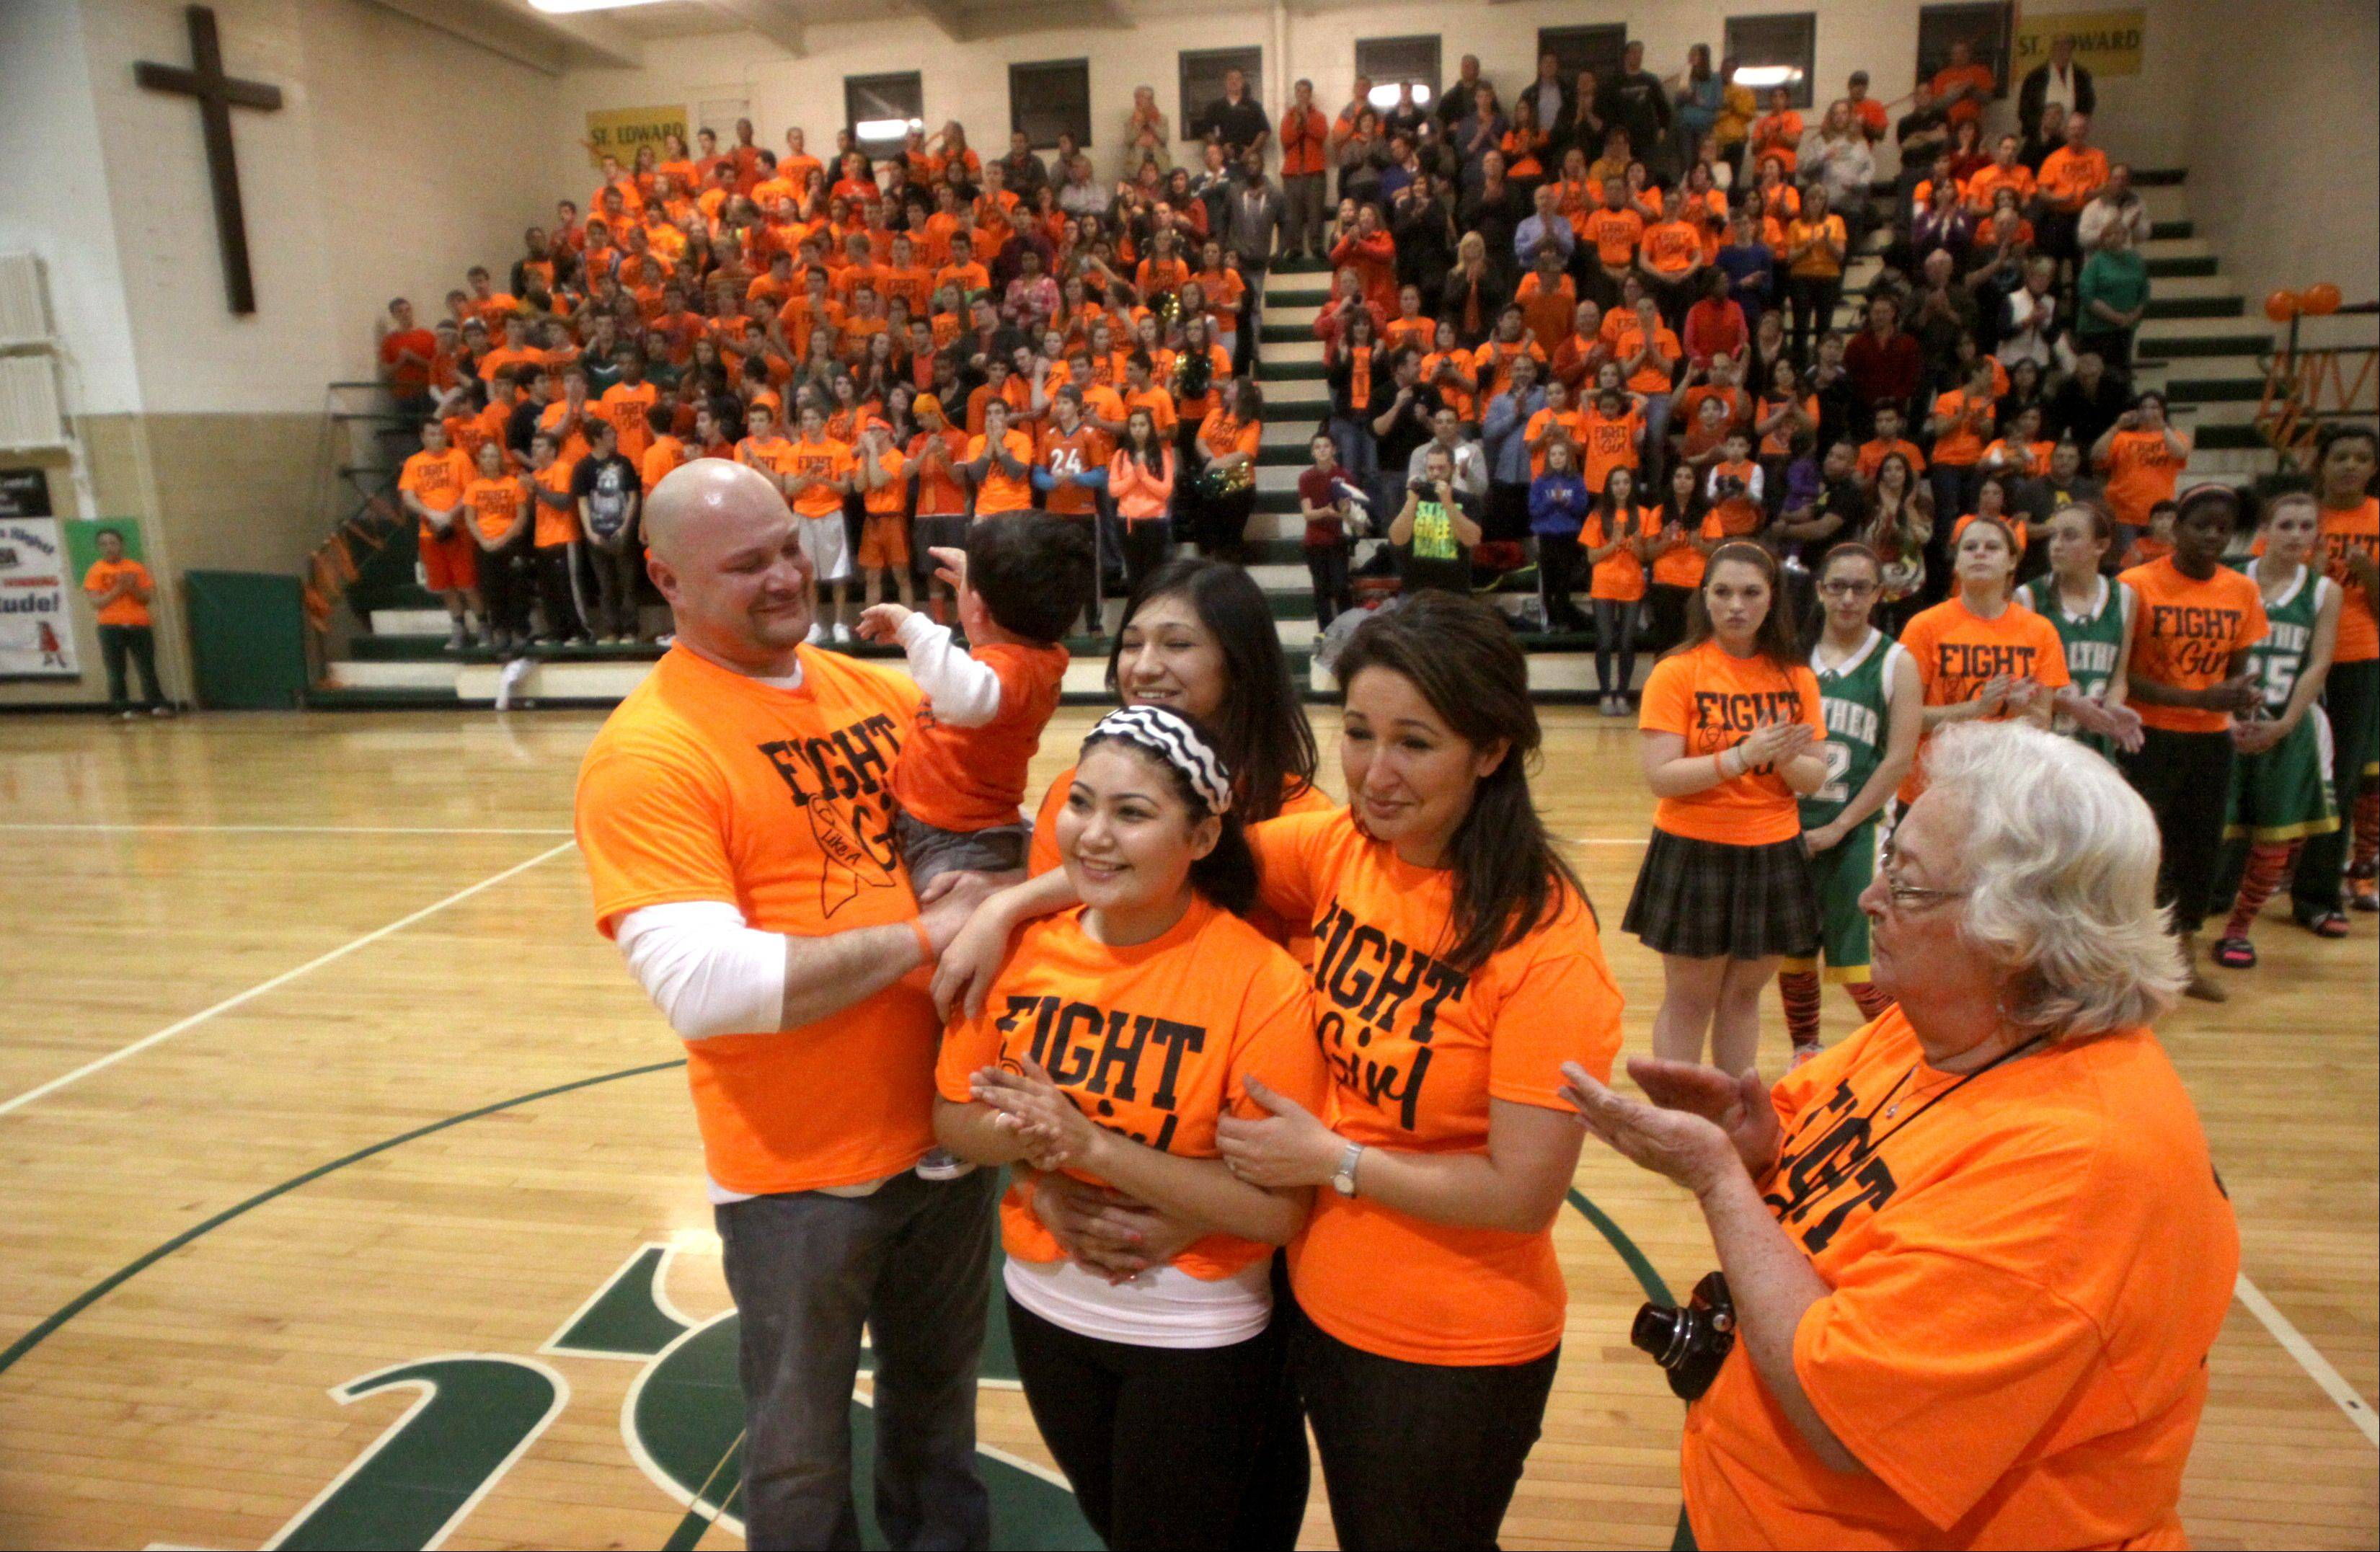 "St. Edward sophomore basketball player Jordan Paz was honored before a varsity contest against Walther Lutheran at Elgin on Thursday night. Paz is undergoing treatment for Leukemia and school personnel arranged an ""Orange Out Night"" to offer support."